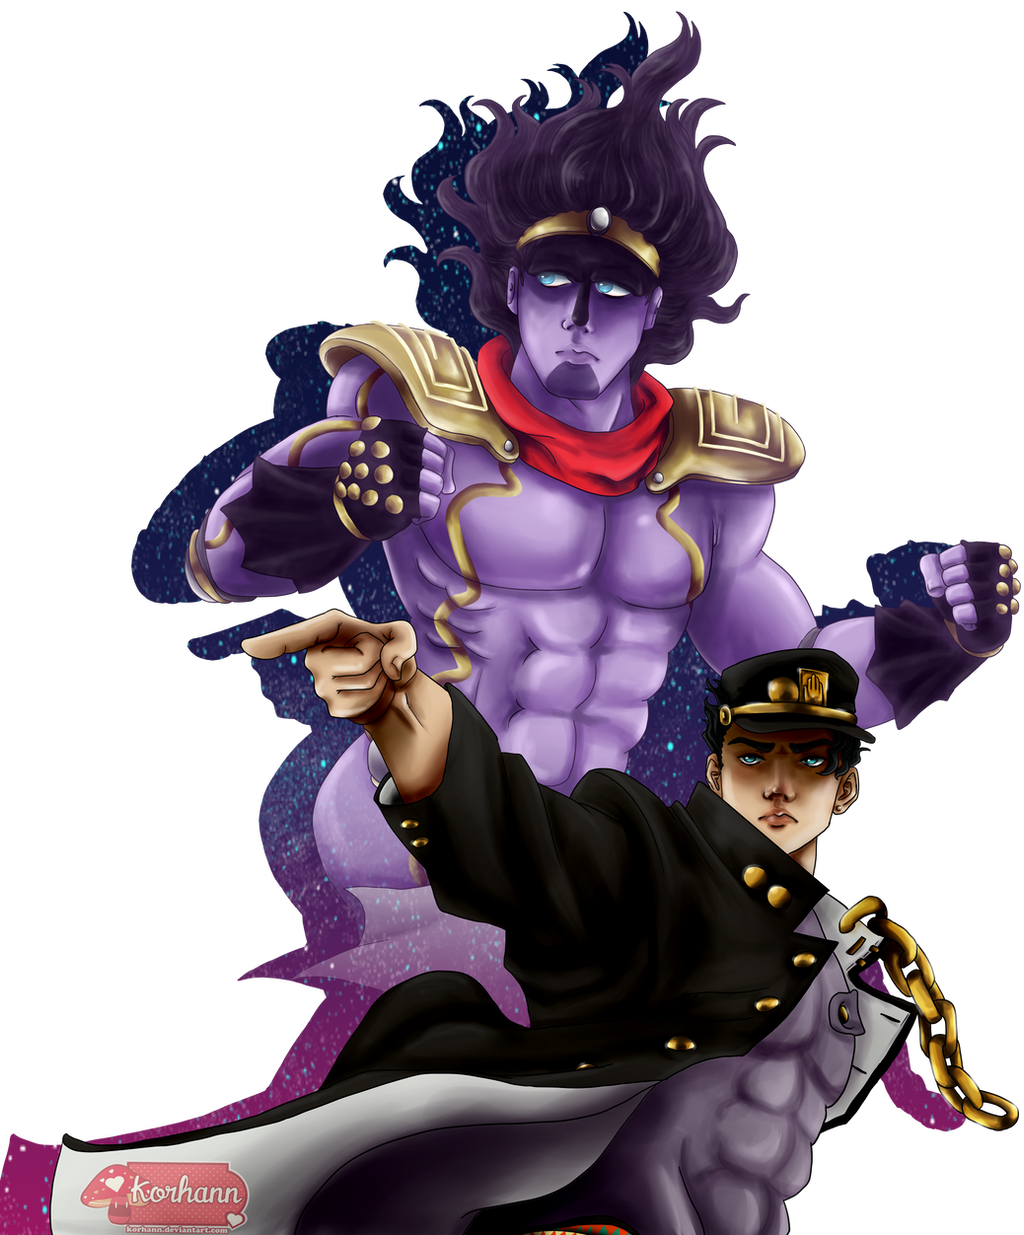 Jotaro Kujo The Stardust Crusader By Dizzy Possum On Deviantart